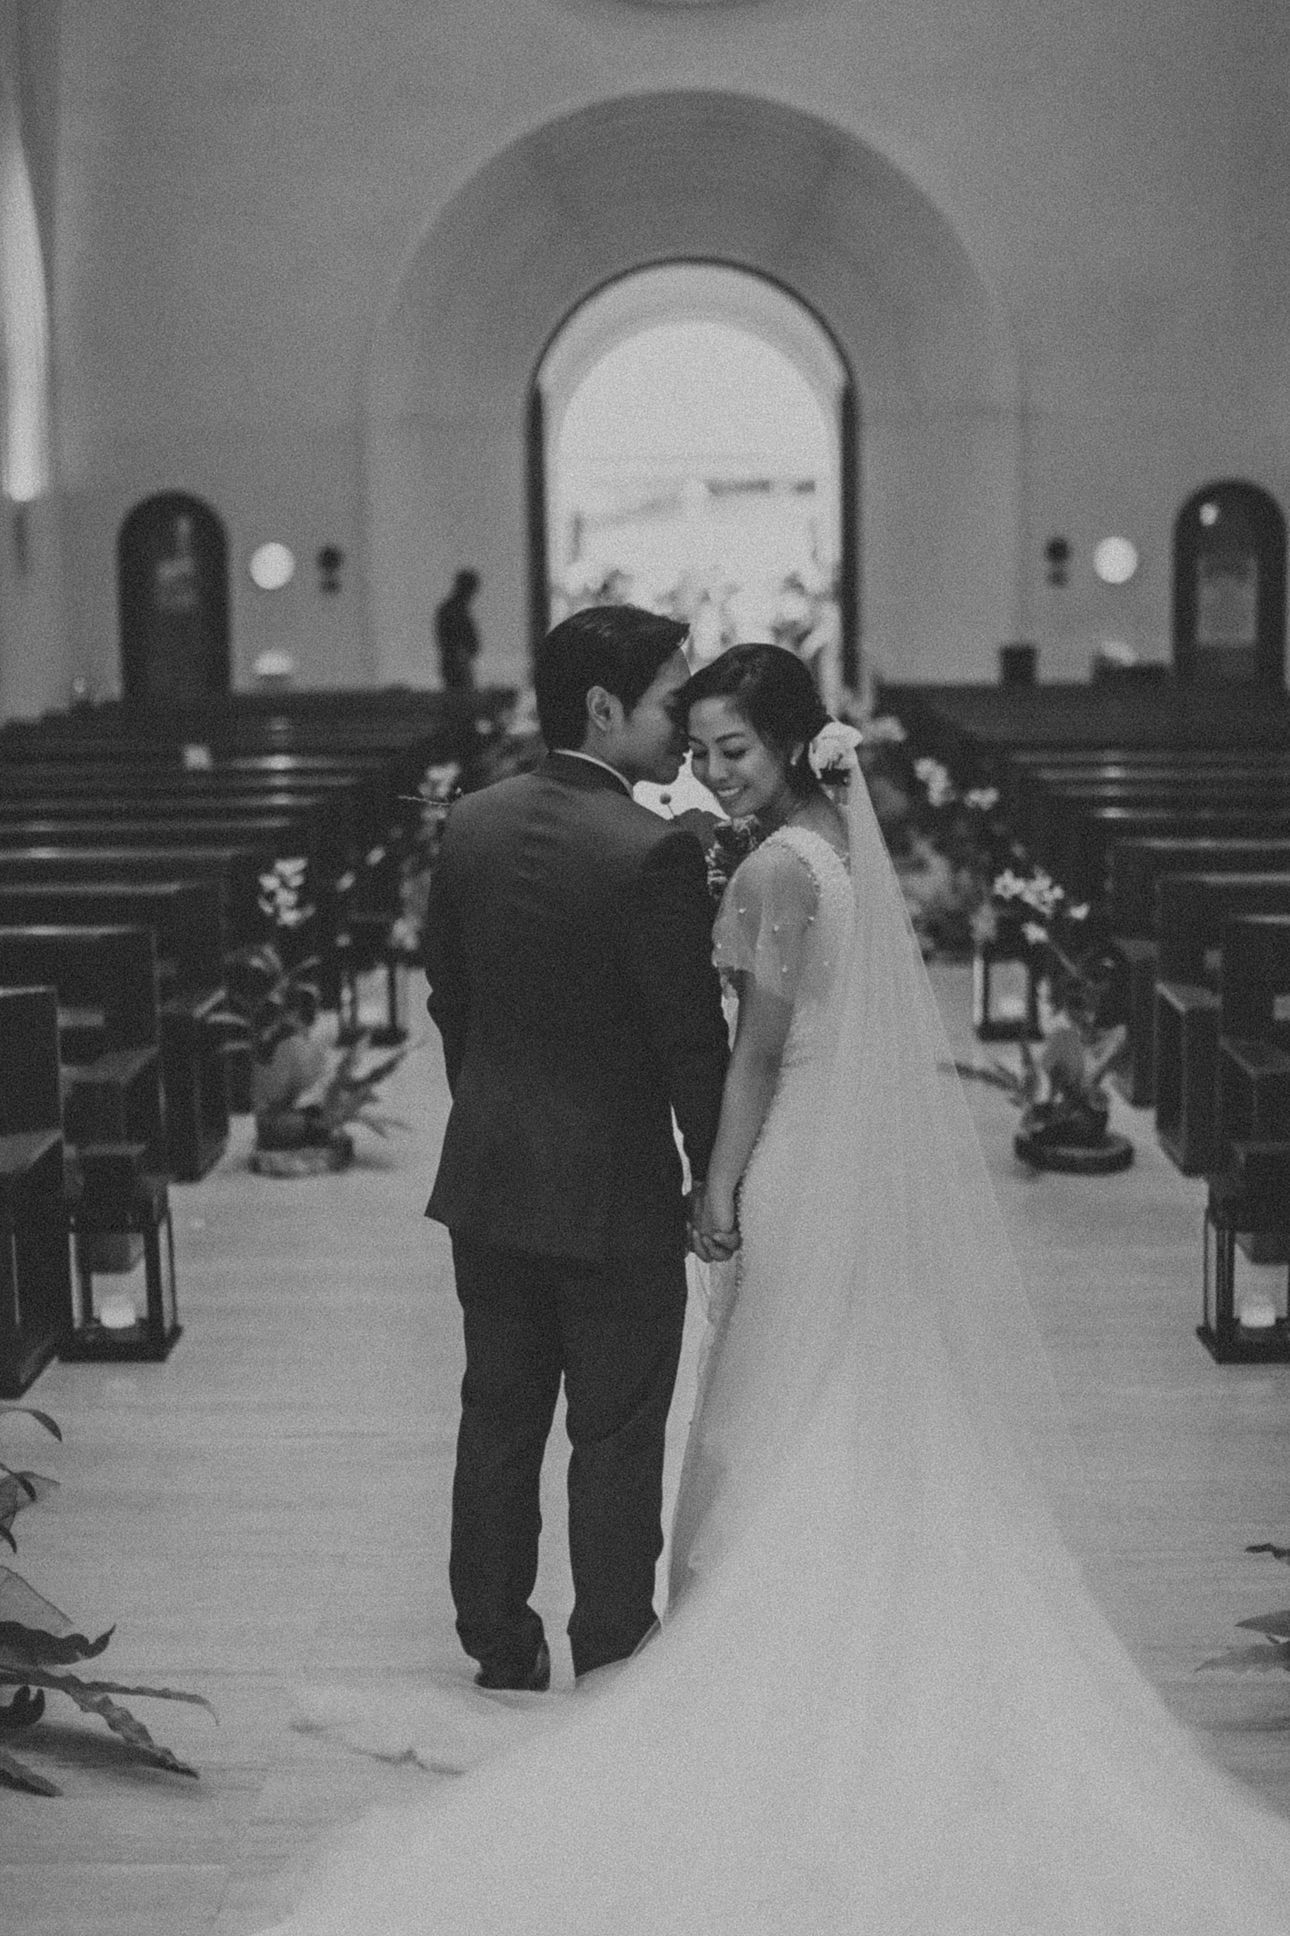 f9c5729cfec3e We're loving this classic black and white photograph of our bride Annabelle  in our Hannah Kong bridal gown. #hannahkongbride #wedding #bridal #gown  #style